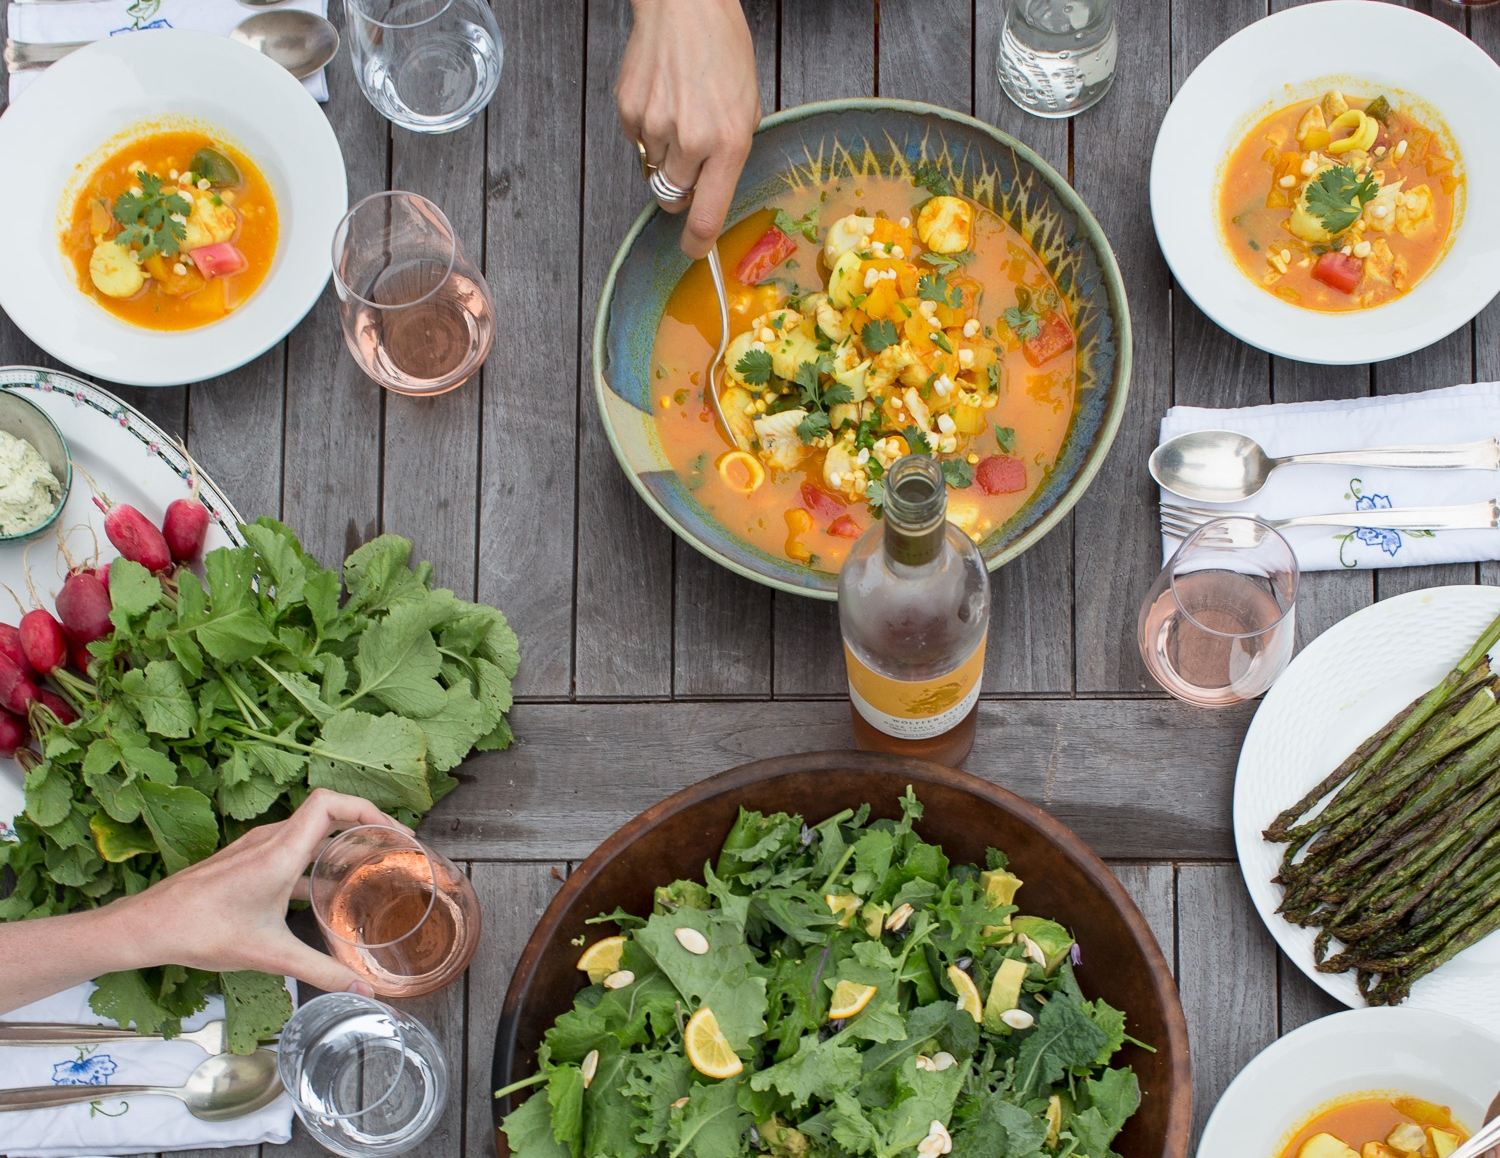 ARticles & Recipes - My ultimate passion is creating healthy eating options for people of all ages, backgrounds, all. And what better way to do so than through media. To that end, I've written for Bon Appetit's Healthy-ish, Mindbodygreen, Furthermore and Clean Plates. I have also volunteered for or worked together with ButterBeans, The Cooke Center, Bubble Org, Brooklyn Arbor School, FoodCorps, and Food Fight.